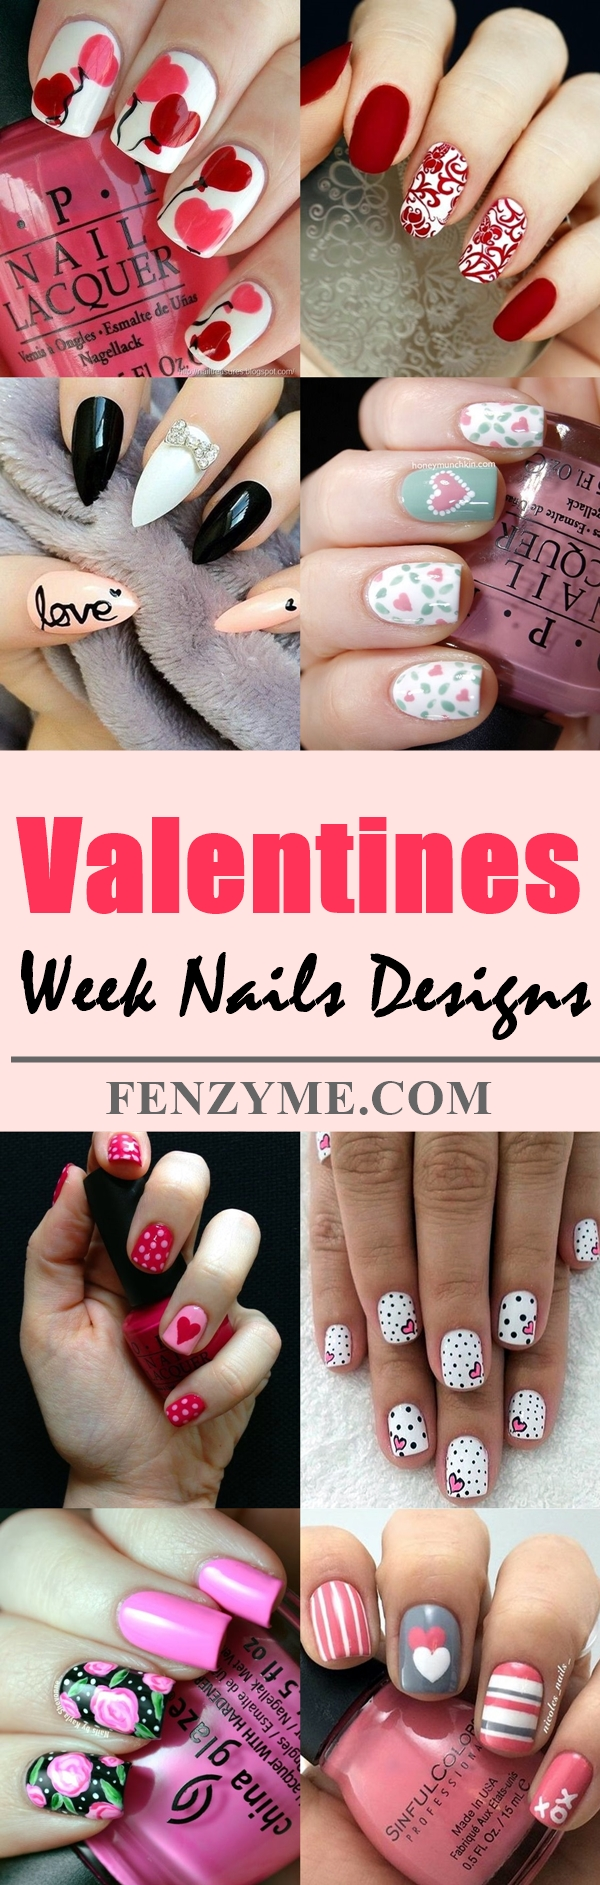 valentines-week-nails-designs-11-tile